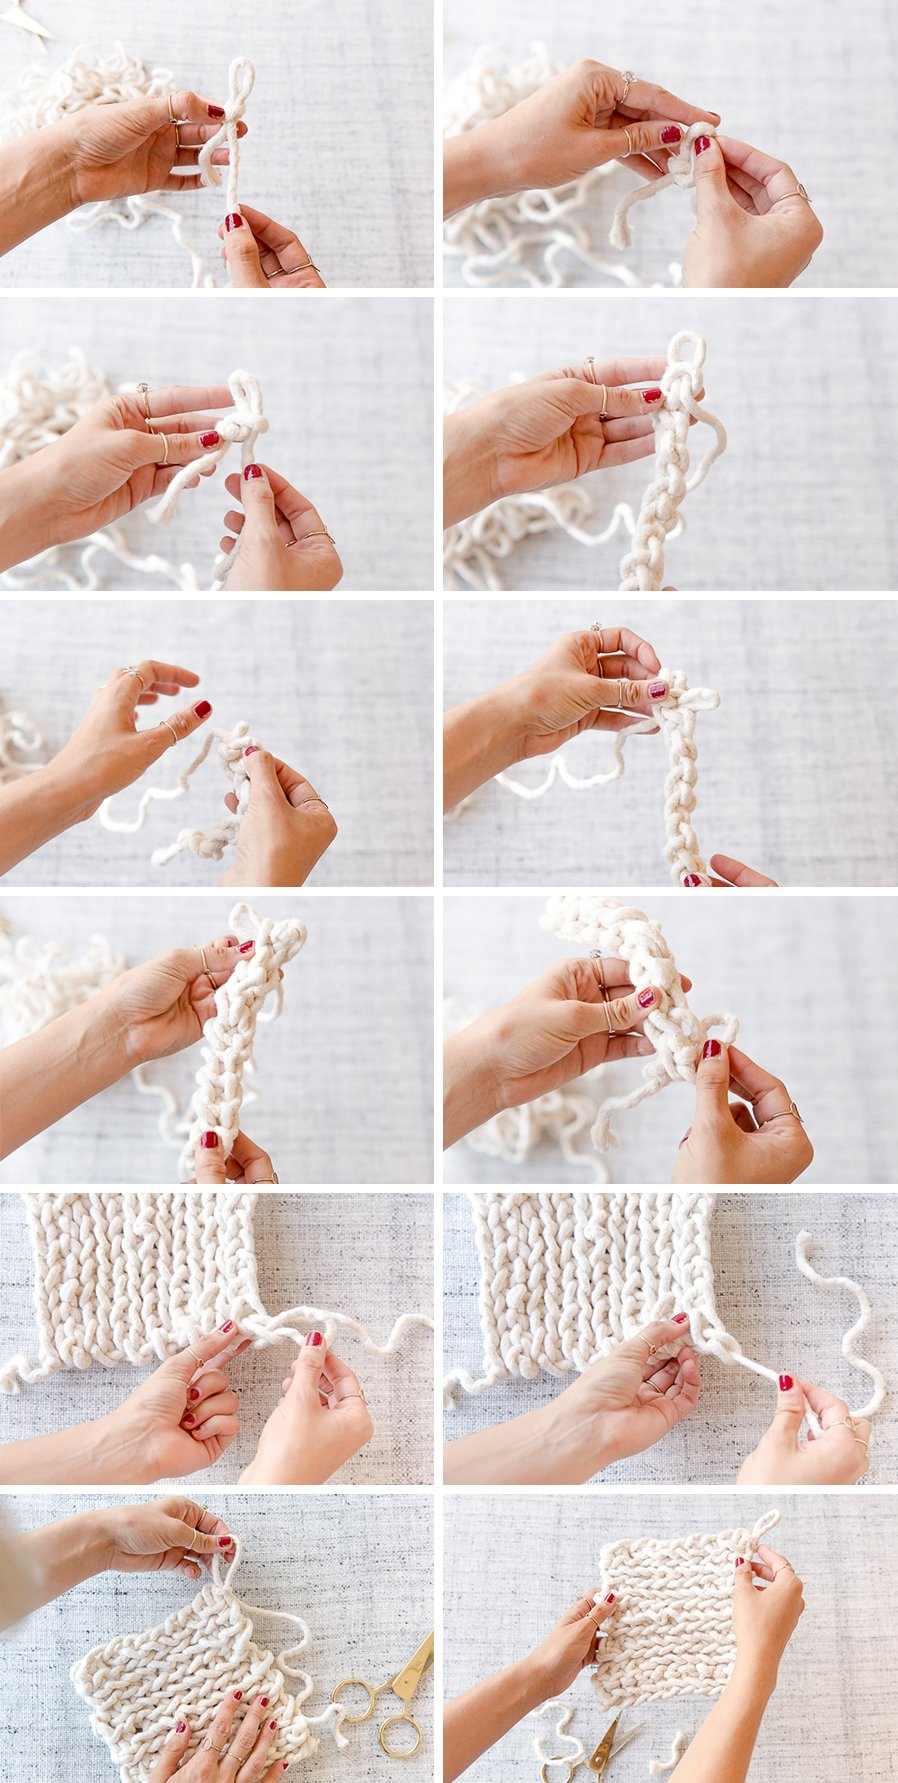 15 Minute DIY to Try: DIY Potholders (Using Just One Supply and Your Hands)